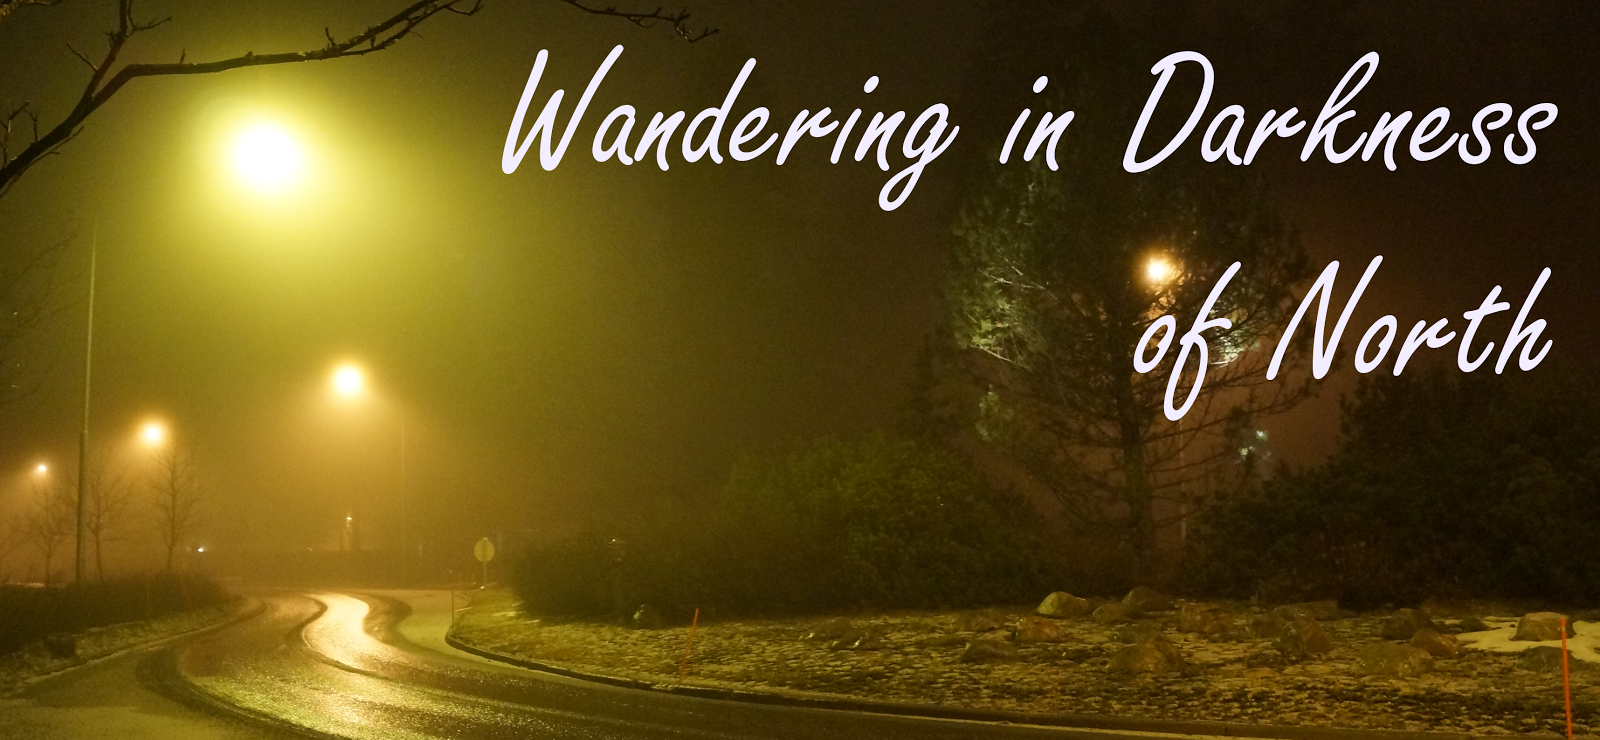 Wandering in Darkness of North